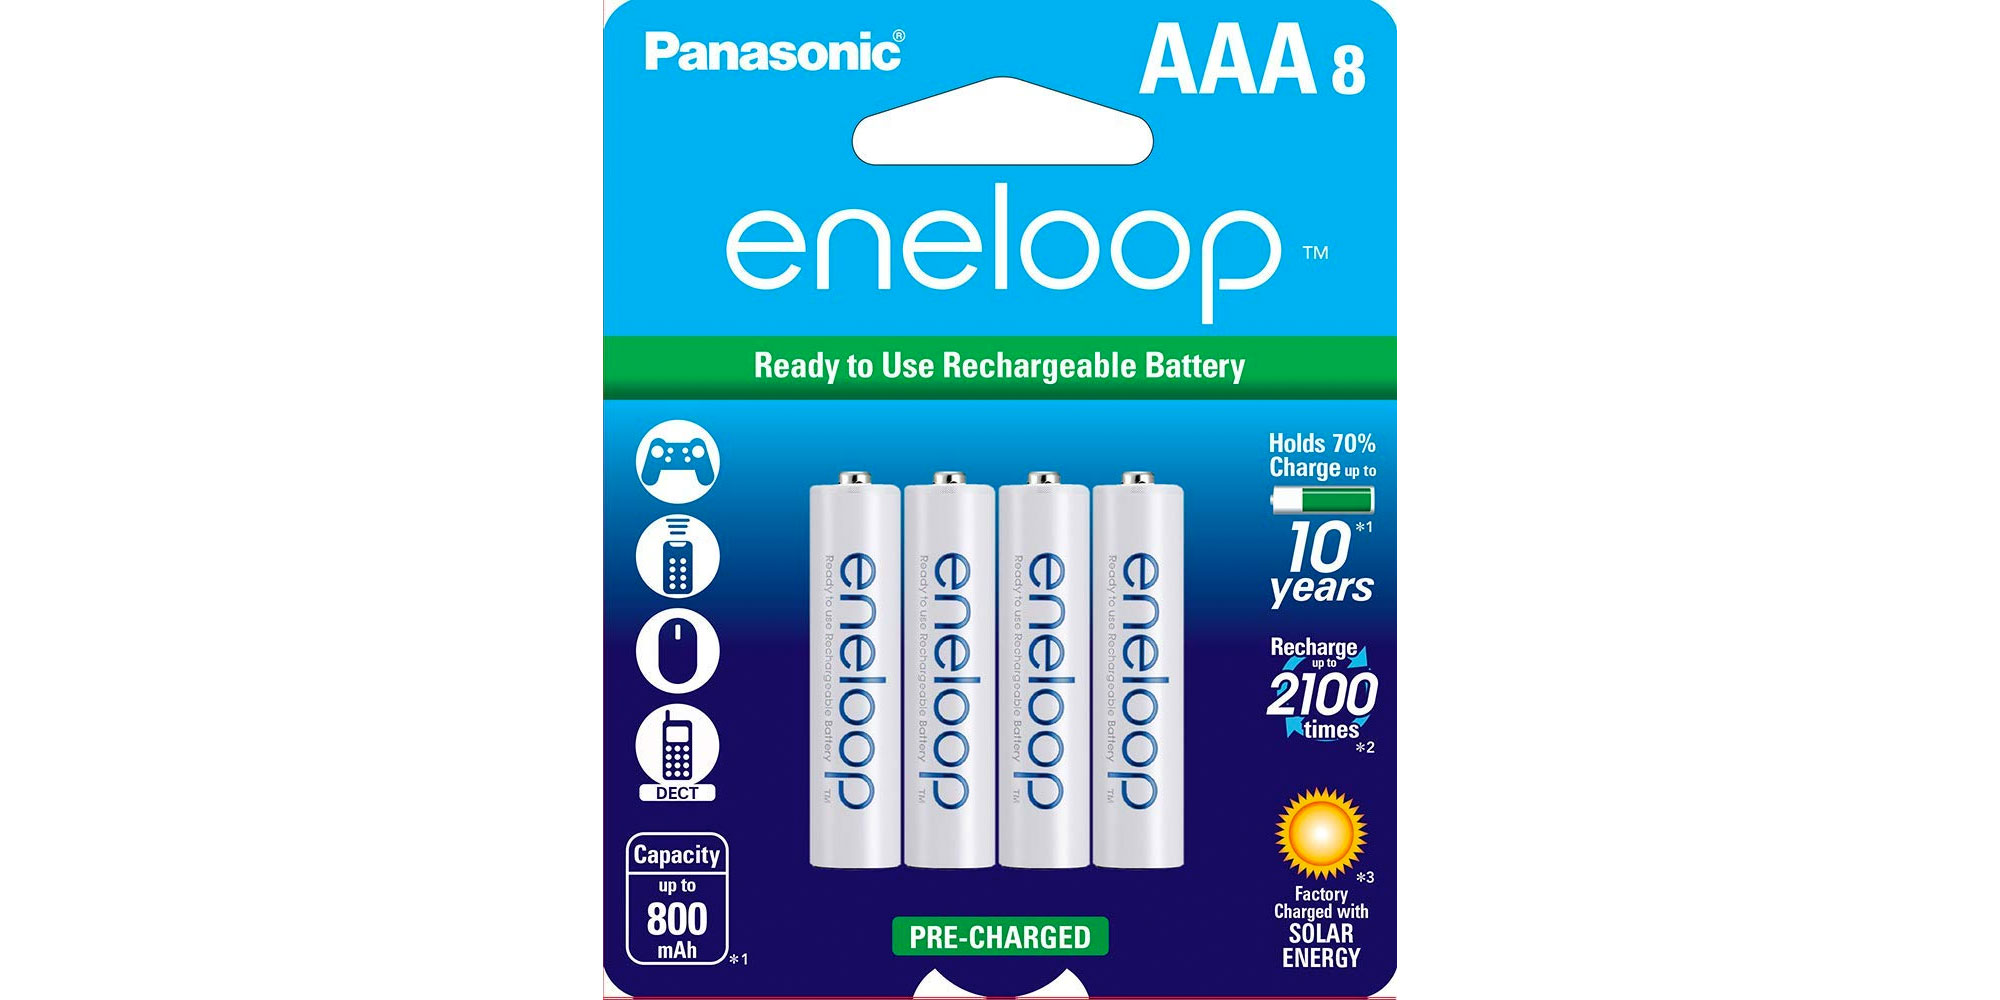 Grab an 8-pack of eneloop rechargeable batteries for $14.50, more in today's Green Deals - Electrek